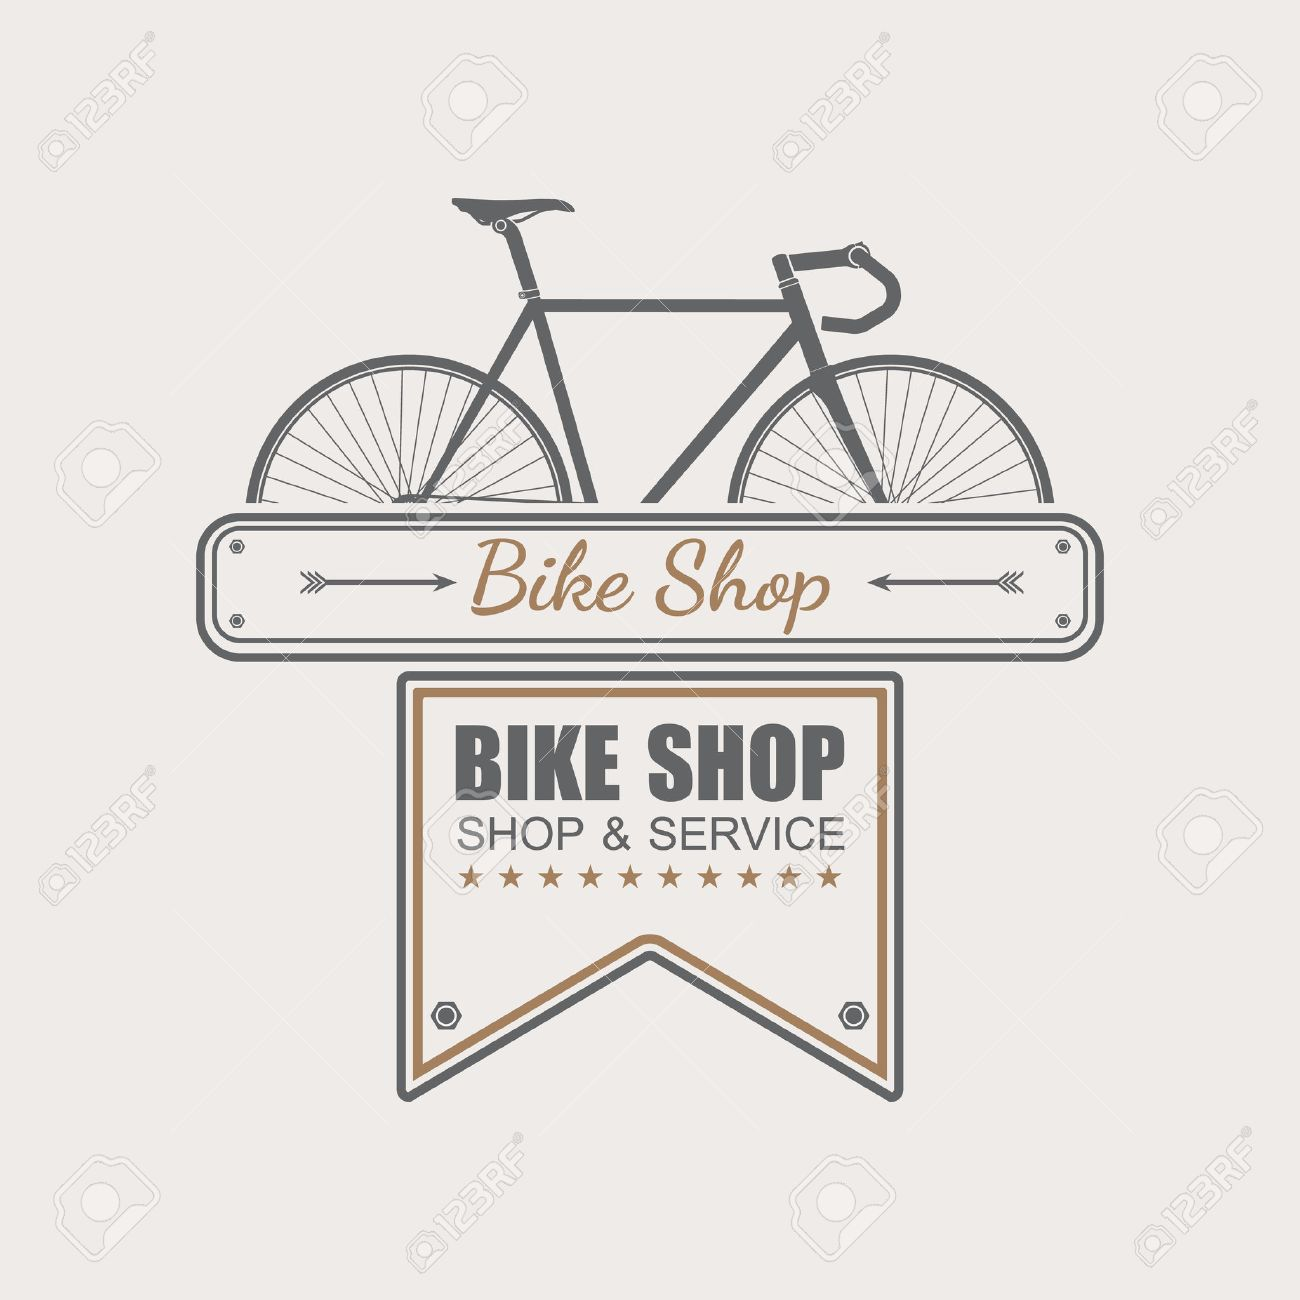 Bike Shop Logo Template,vector Royalty Free Cliparts, Vectors, And ...